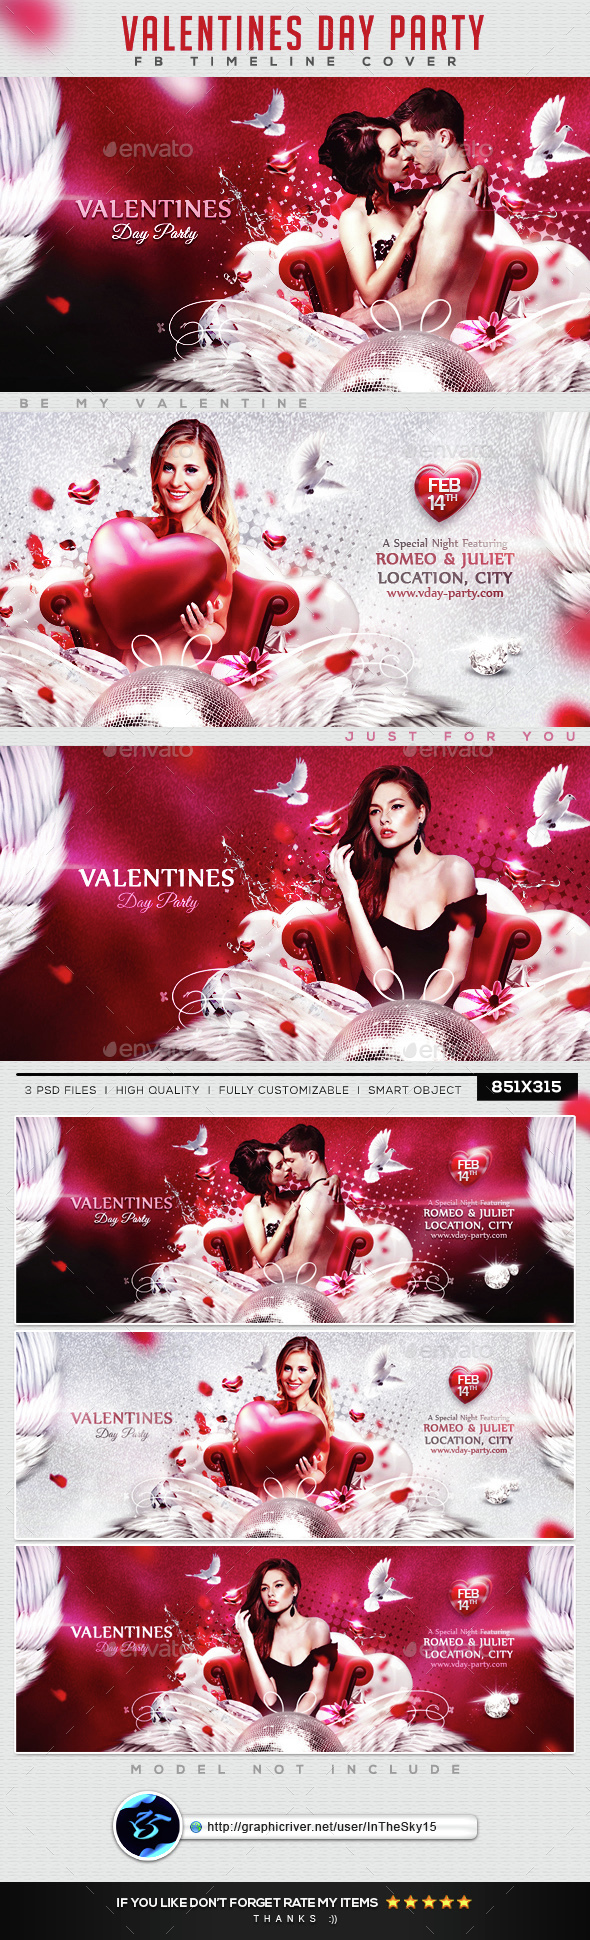 Valentines Day Party FB Timeline Cover